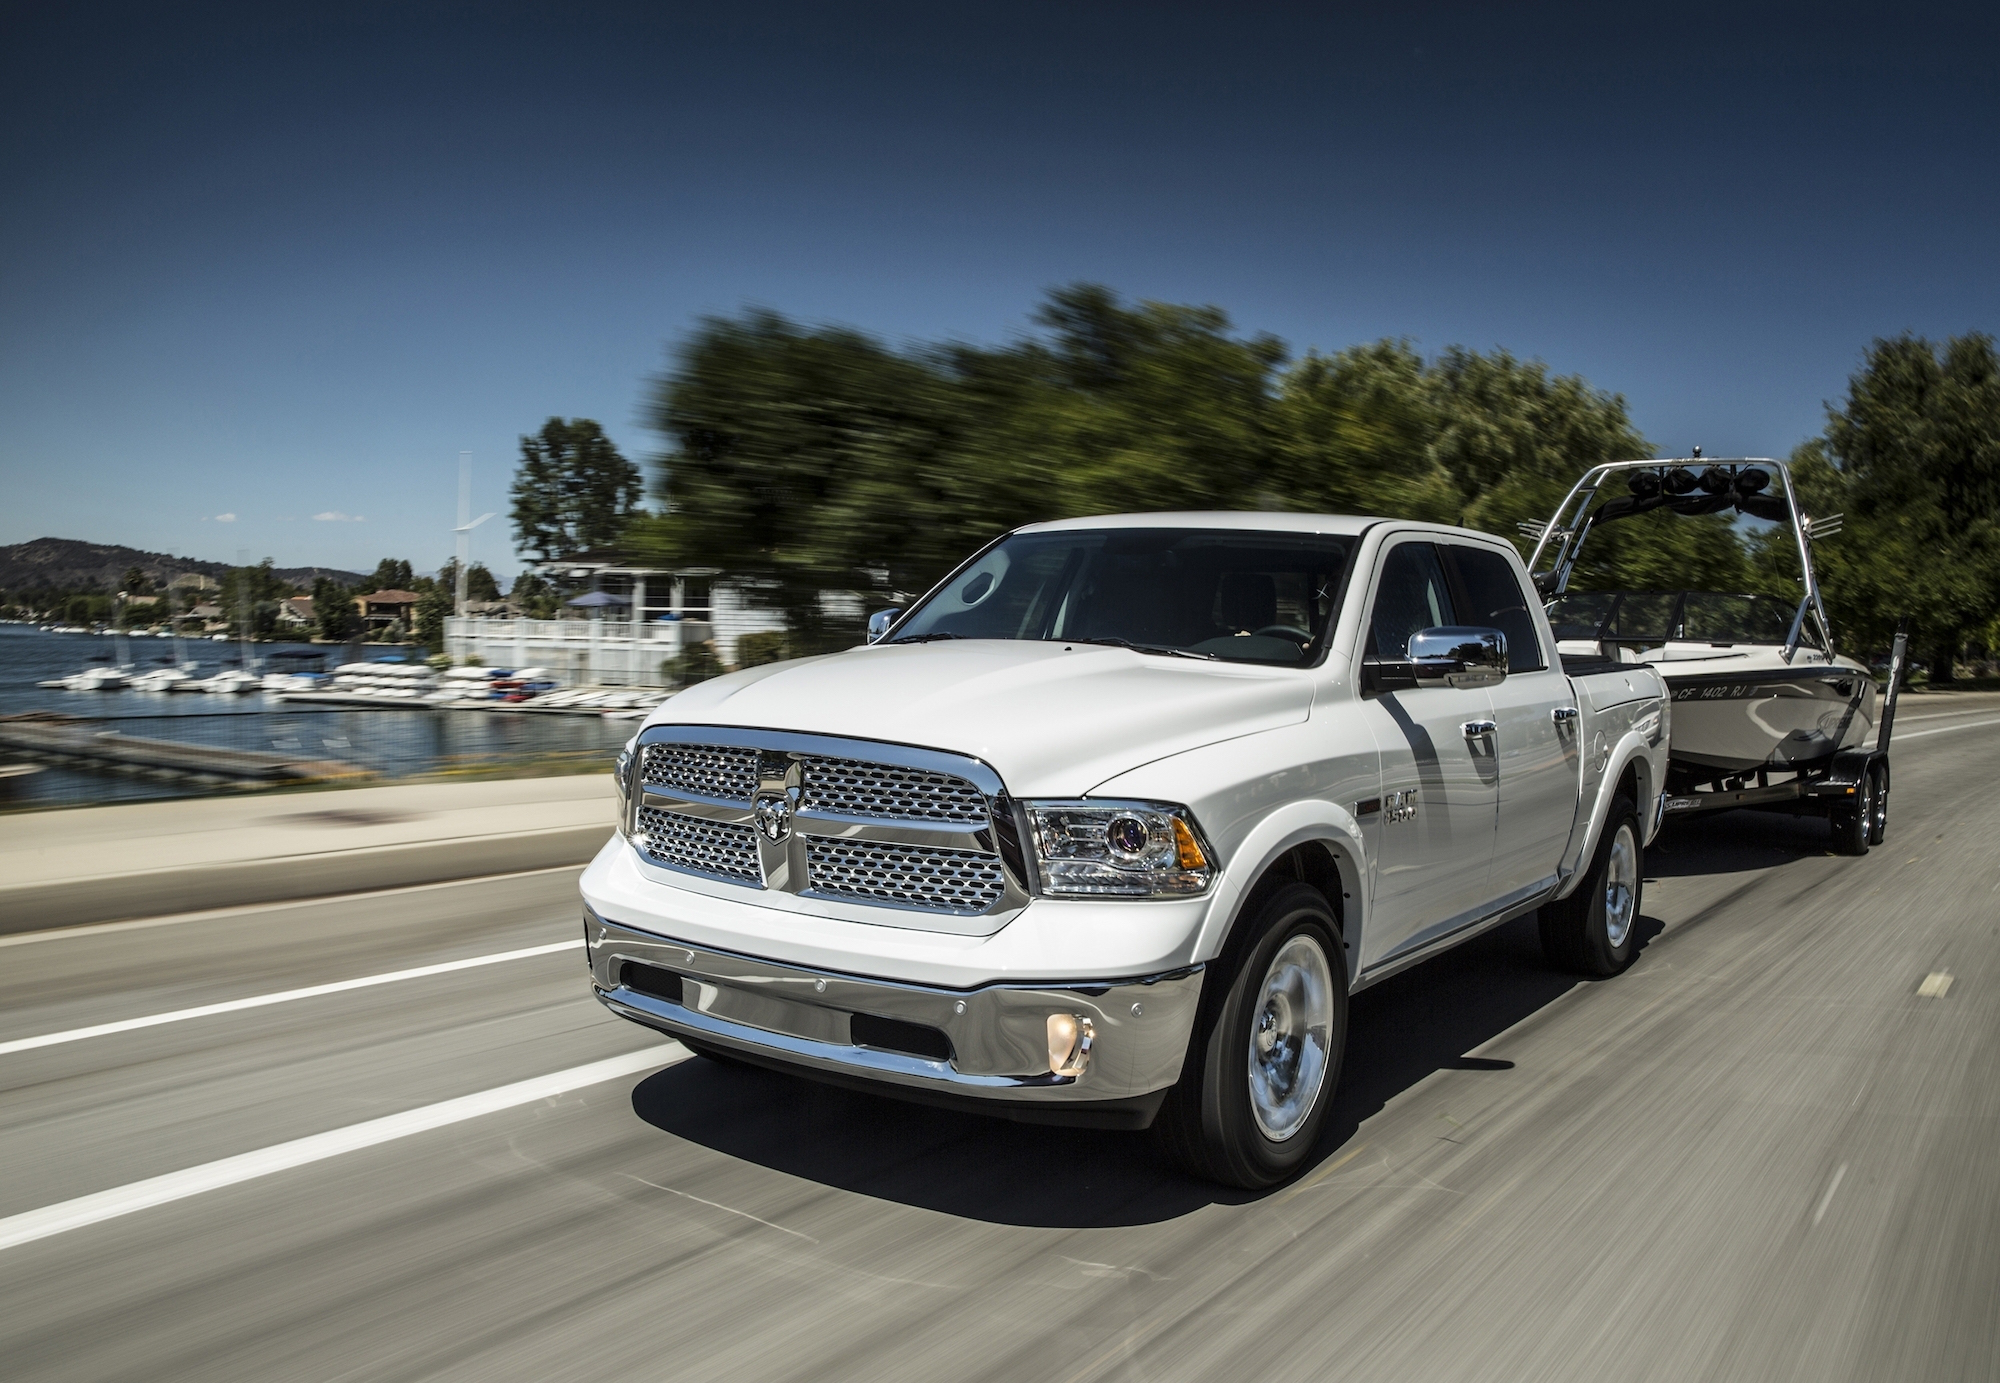 Diesel Ram 1500 reportedly back in production despite emissions